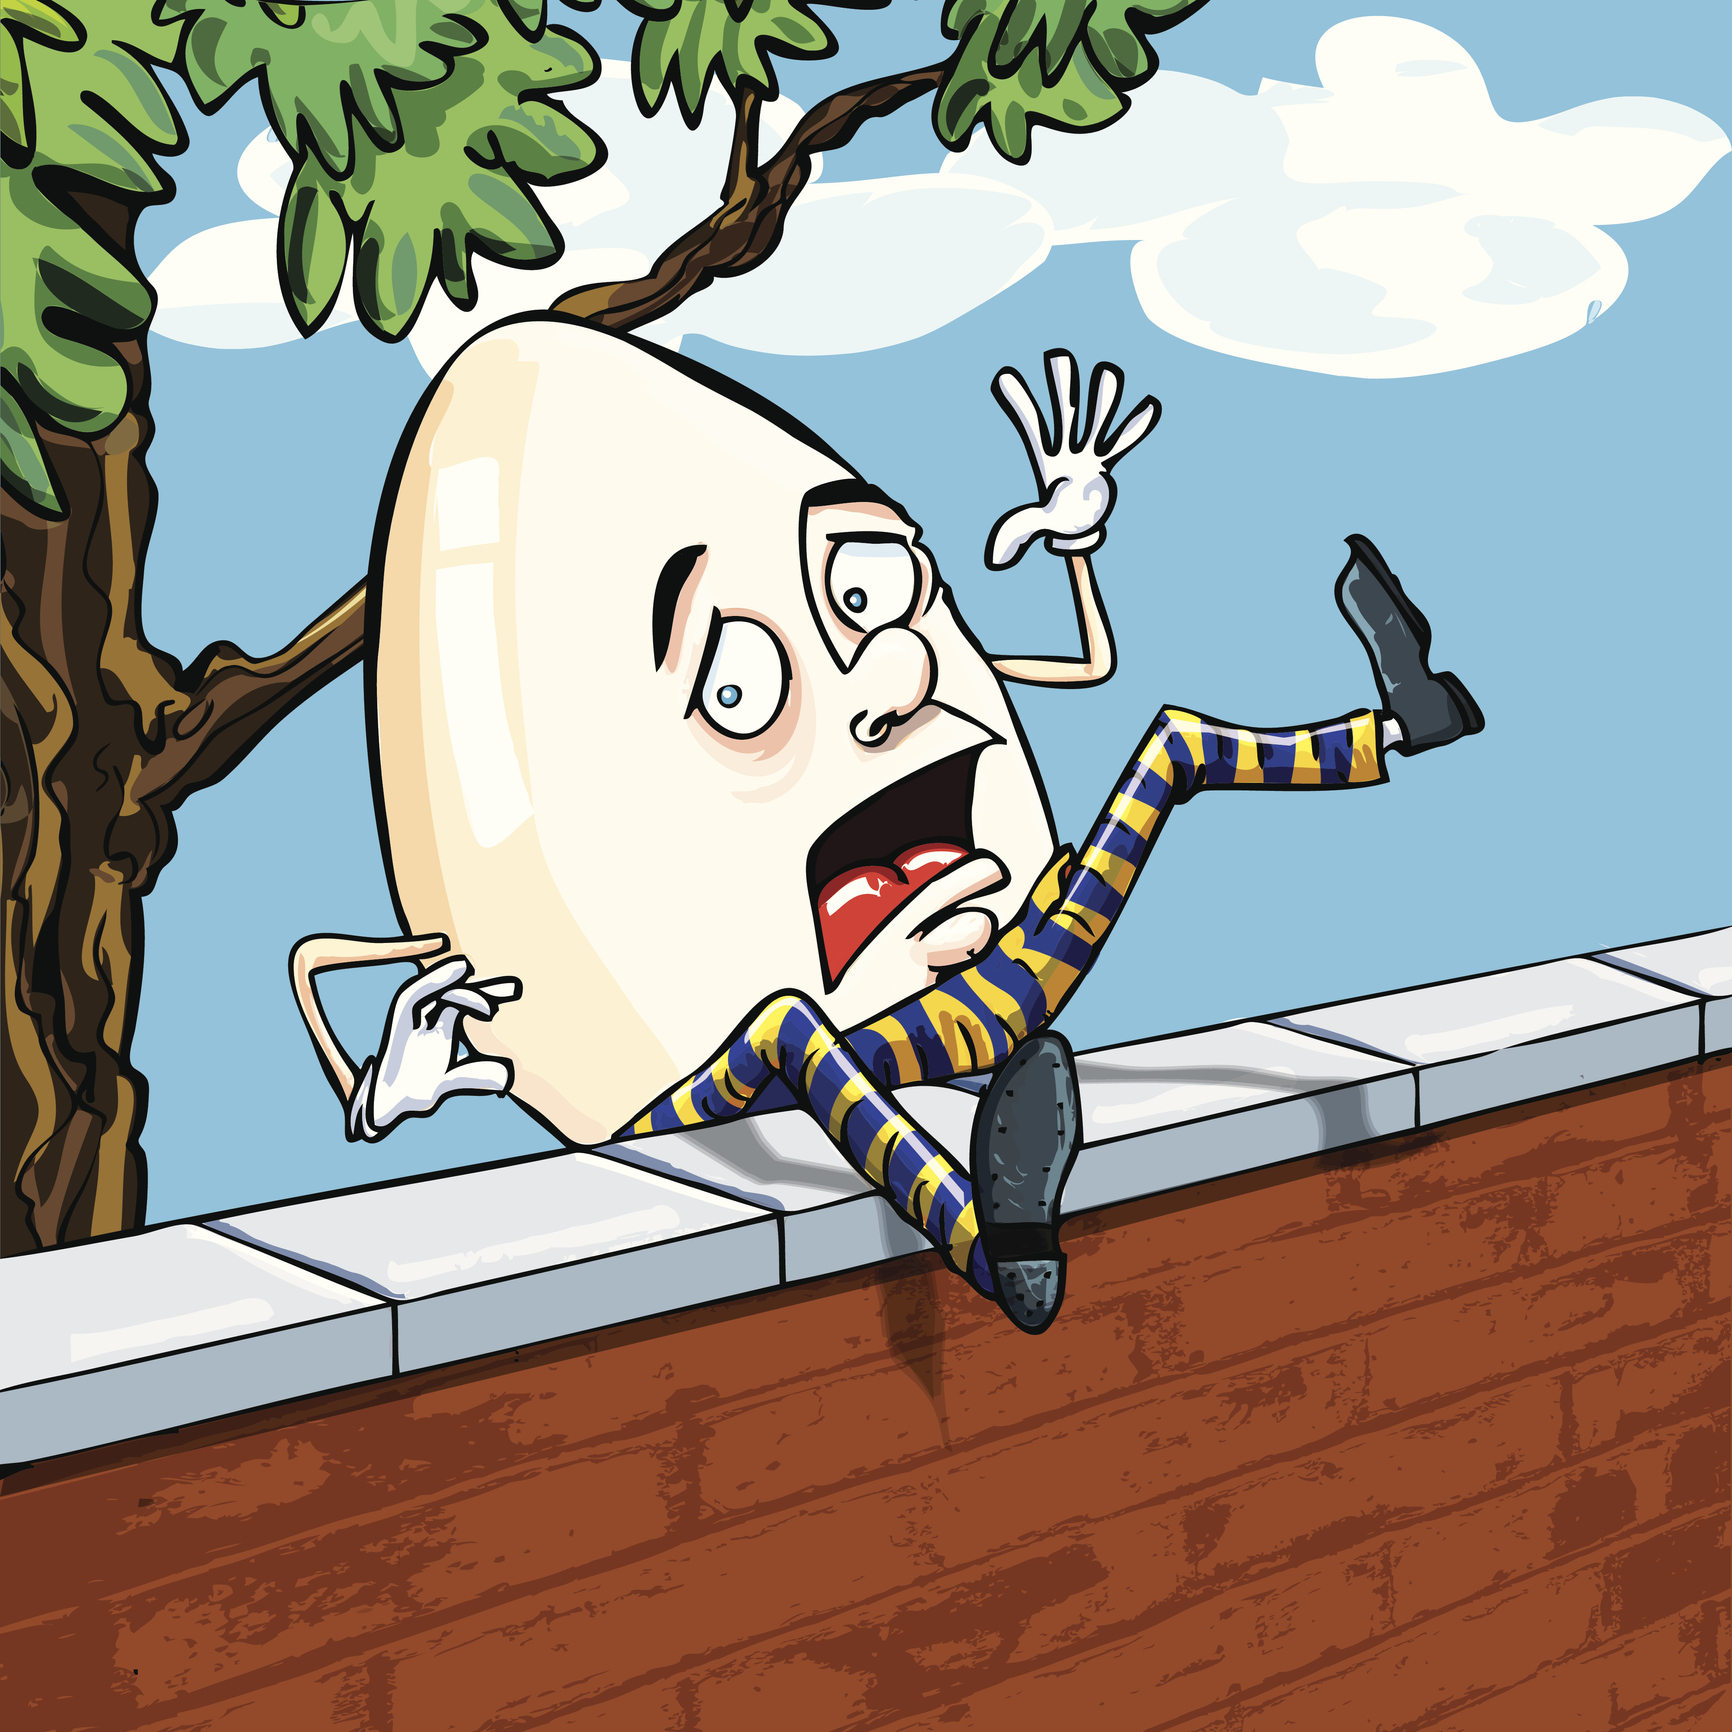 Humpty dumpty clipart meaning. Lessons on trauma care